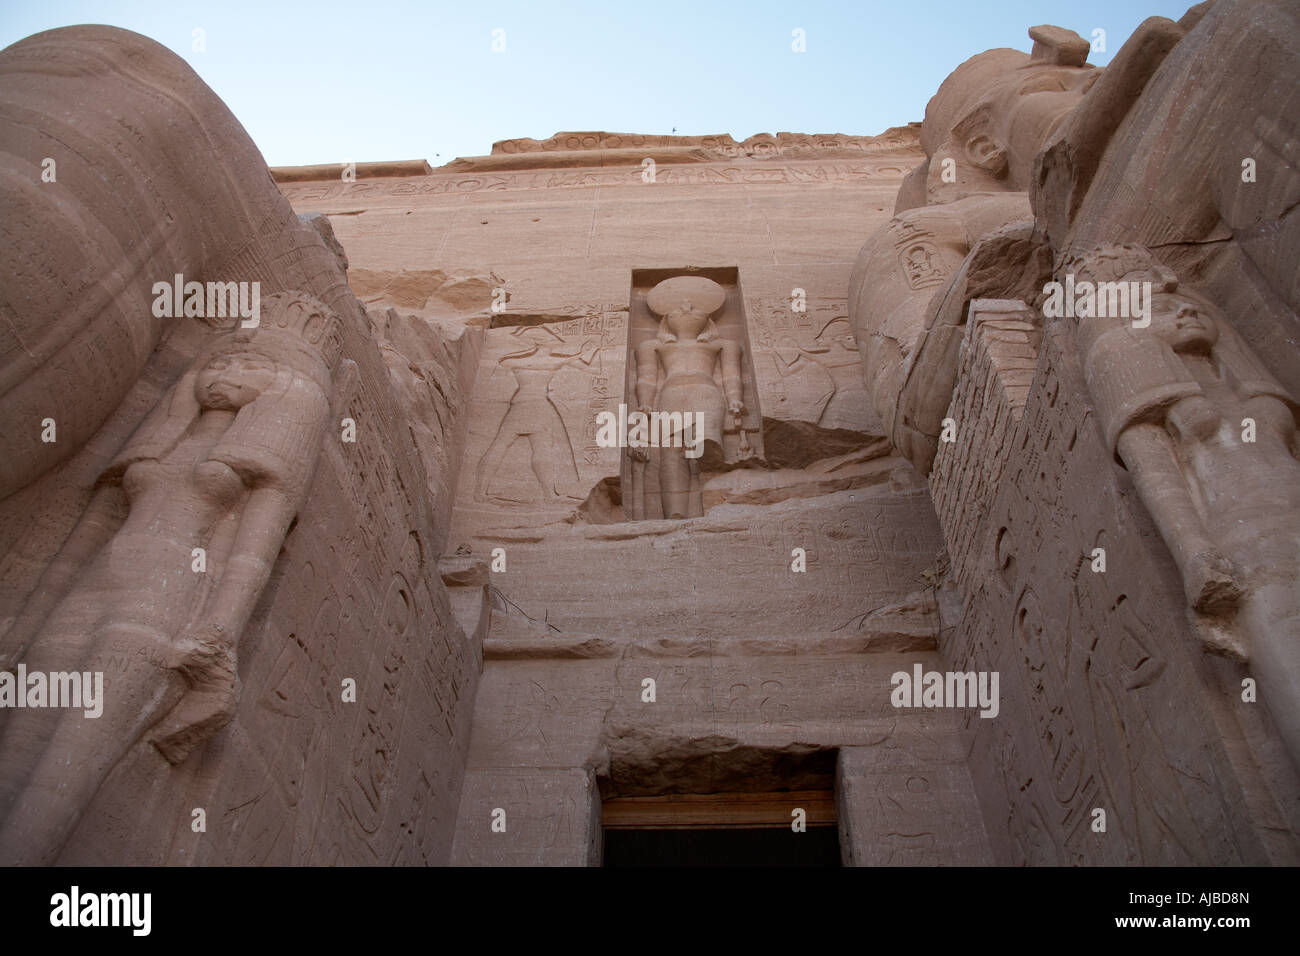 Carved stone entrance to the Temple of Abu Simbel Upper Egypt Africa - Stock Image